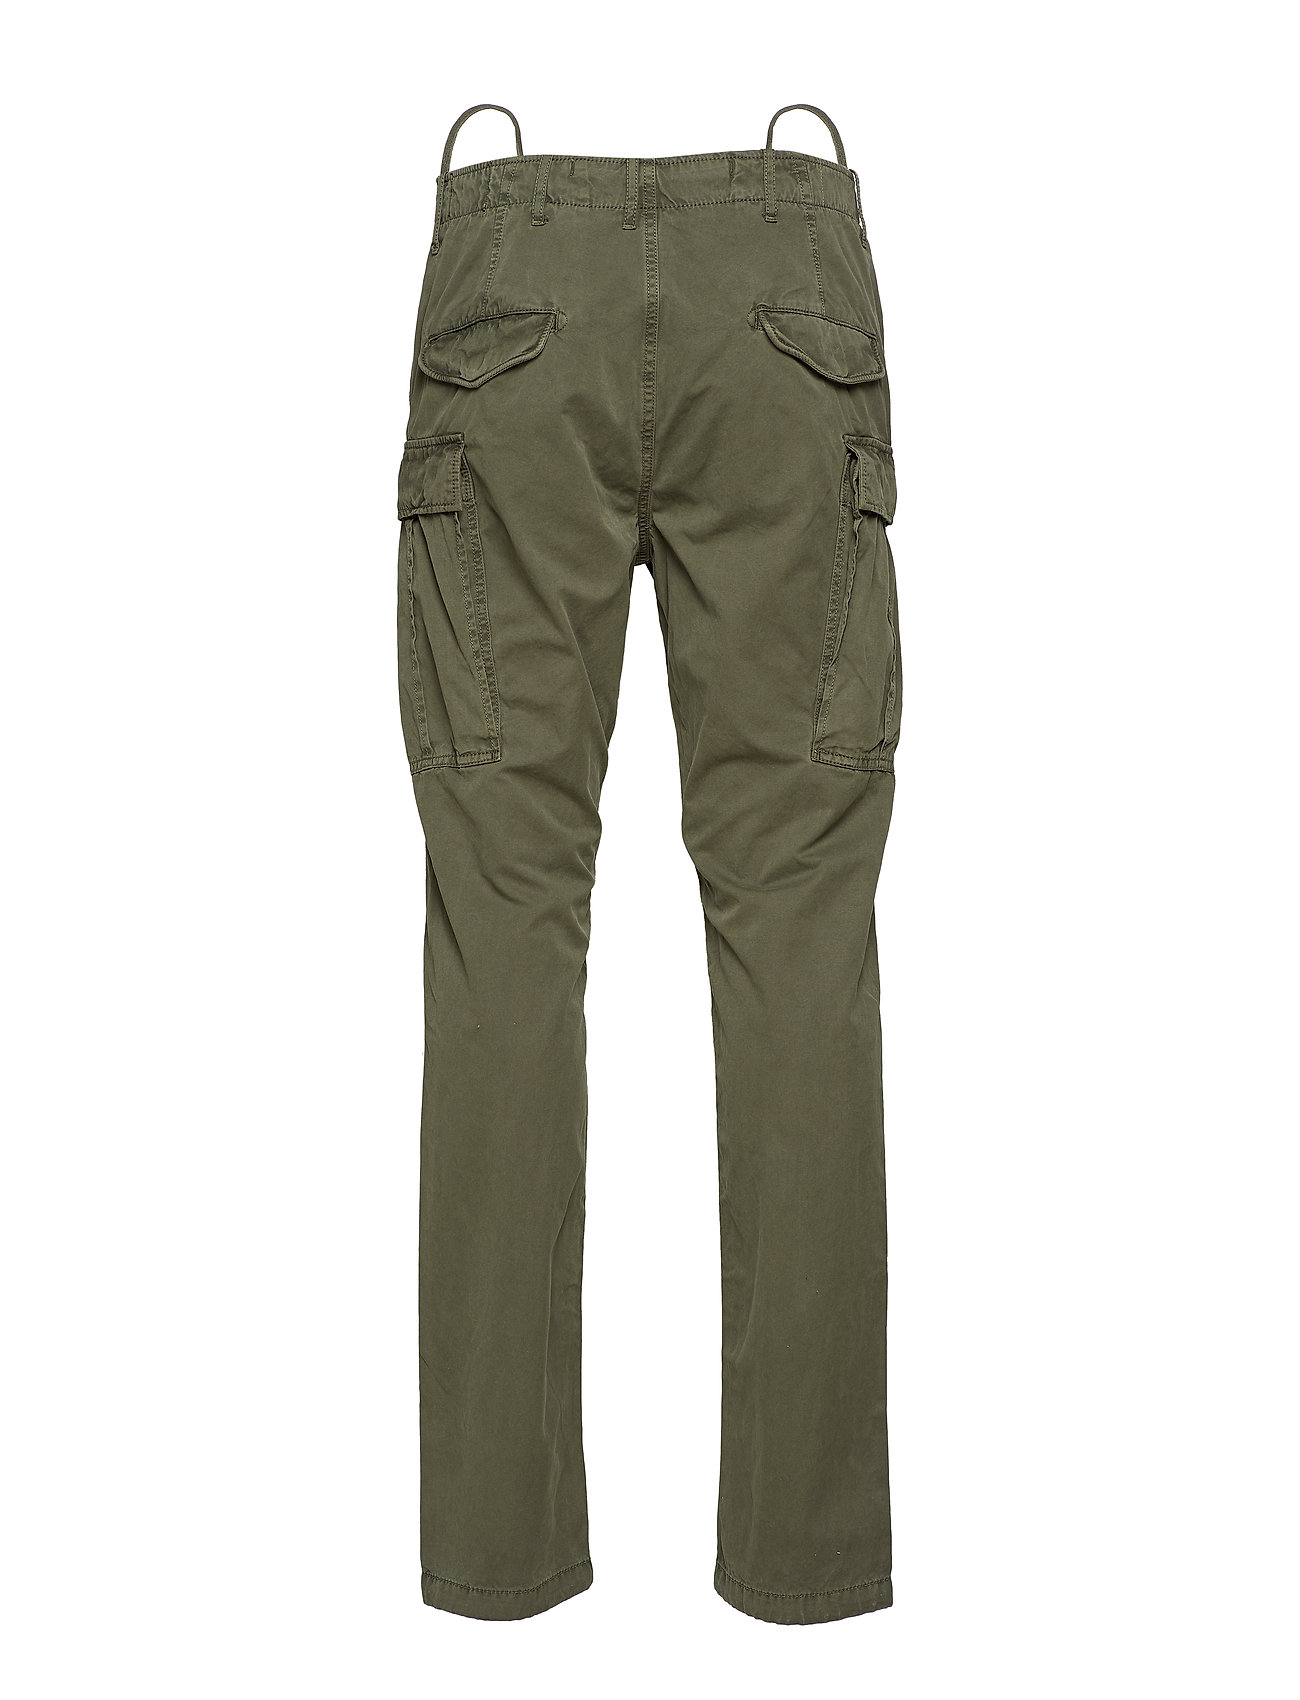 Core ForestSuperdry Cargo Core Cargo Pantdeep Pantdeep Pantdeep Core Cargo ForestSuperdry Cargo ForestSuperdry Core OmwvNn08